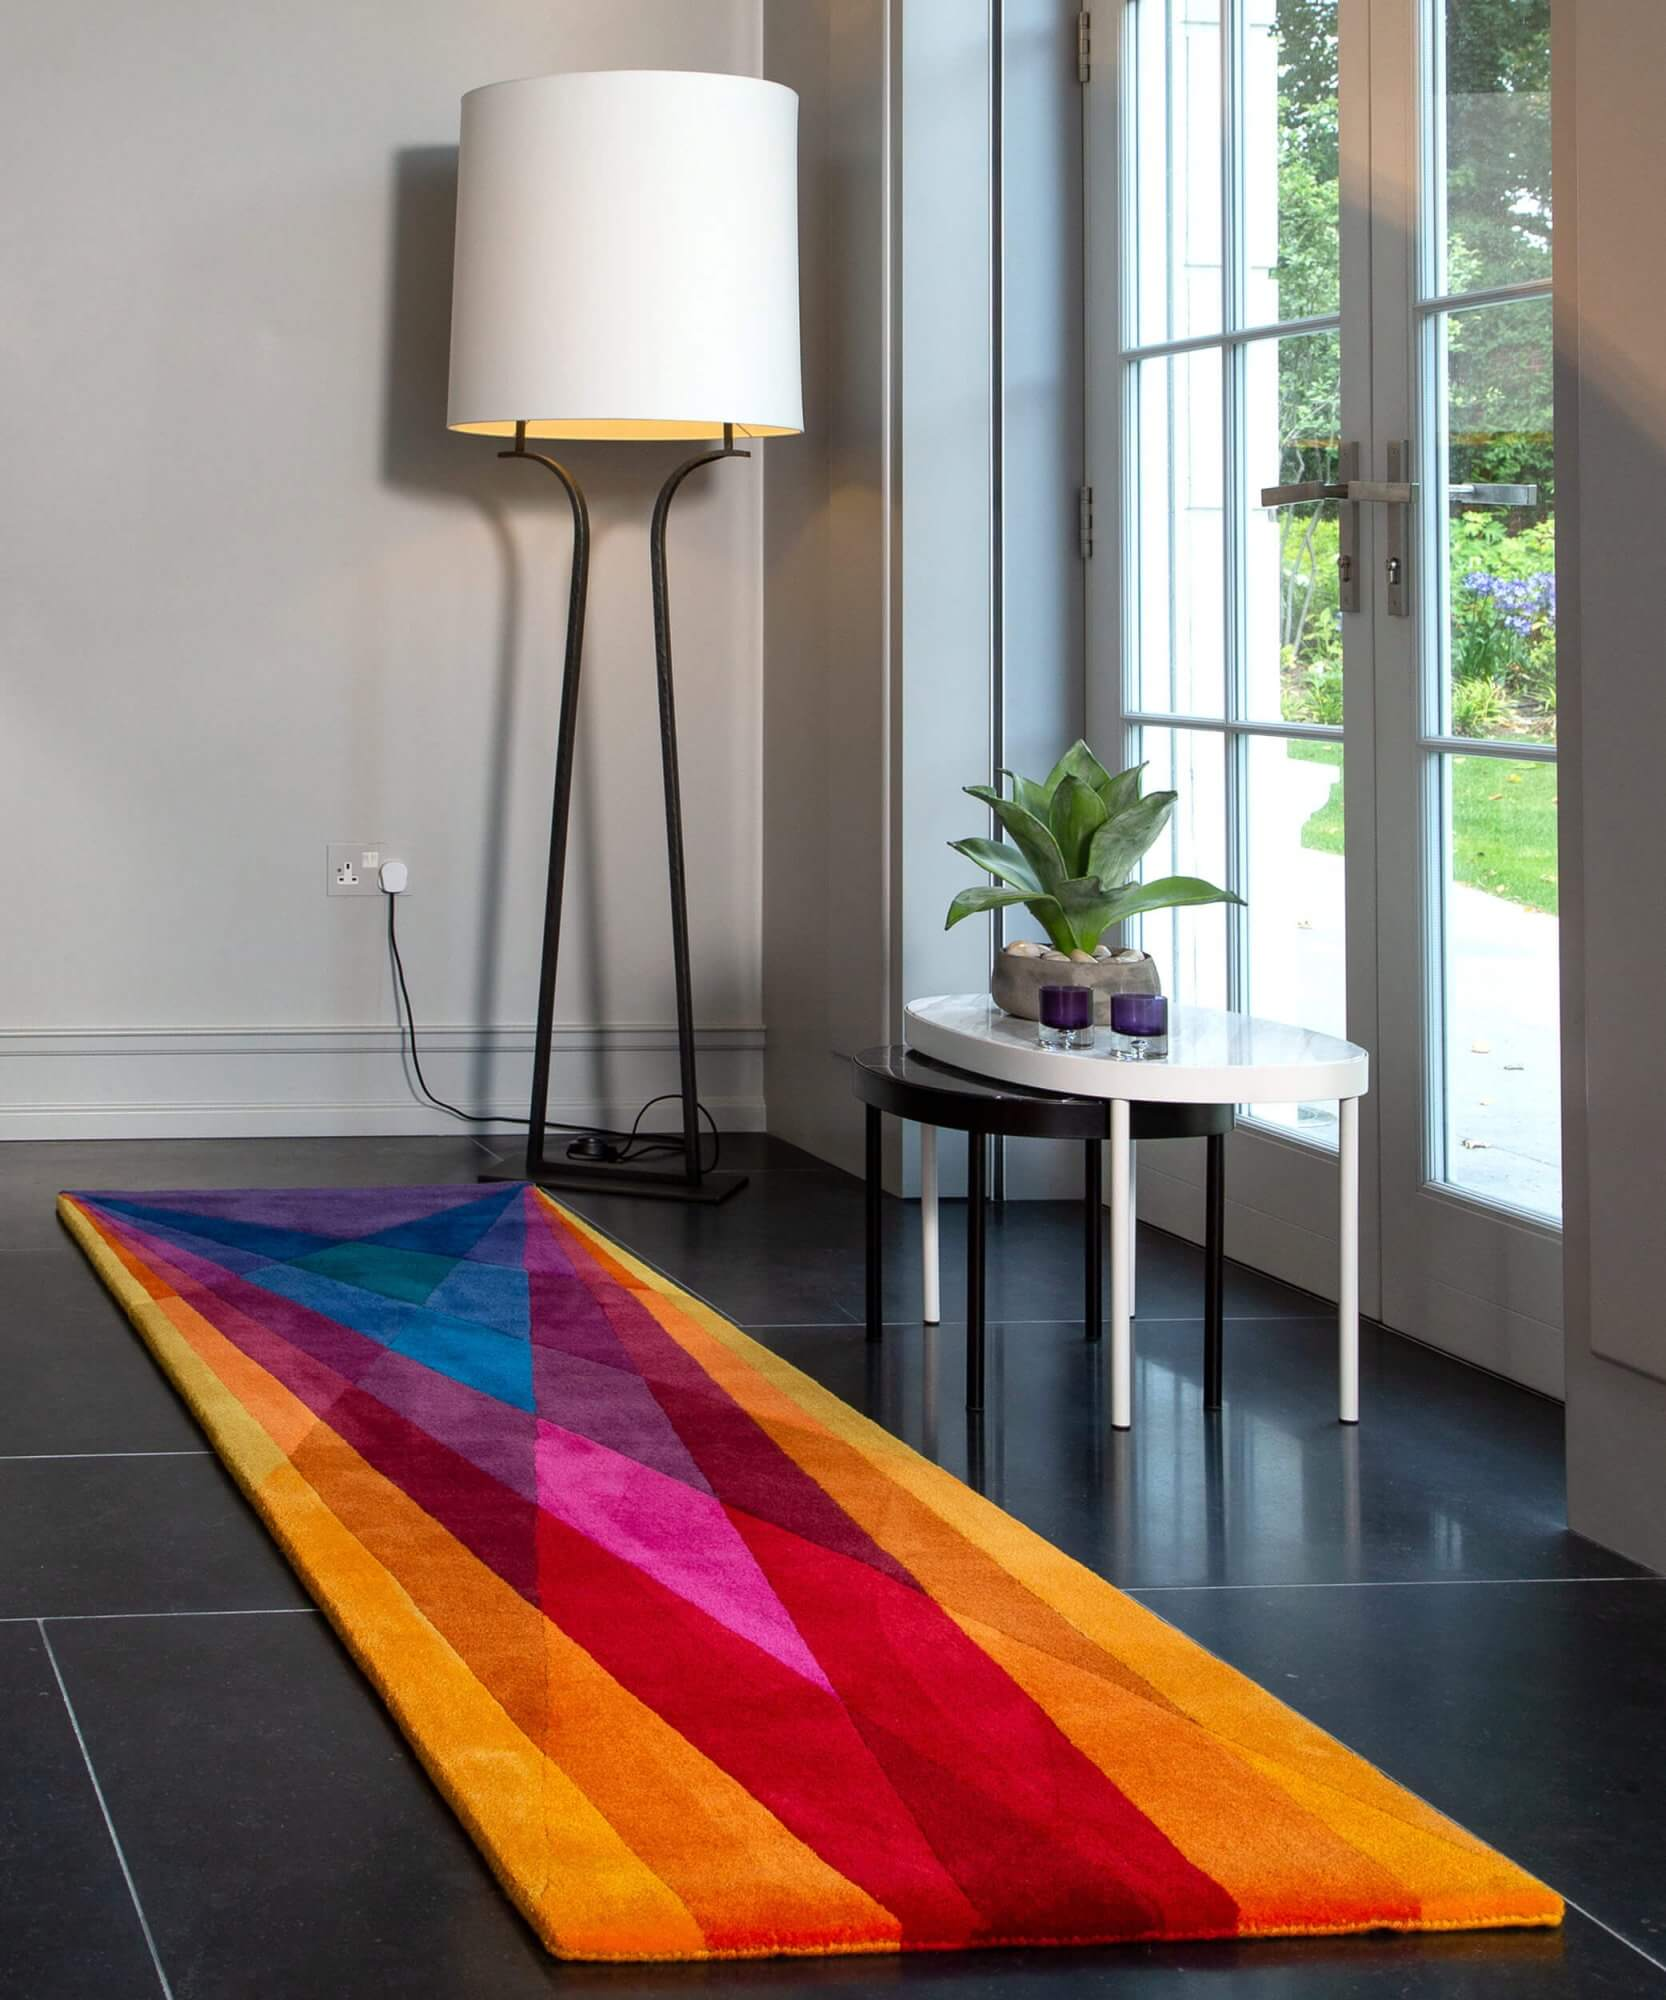 Sonya Winner Rainbow multi coloured runner rug shown in a large entrance hall, with John Lewis black and white marble coffee table and white floor lamp, showcasing the modern geometric pattern and brightly coloured runner rug